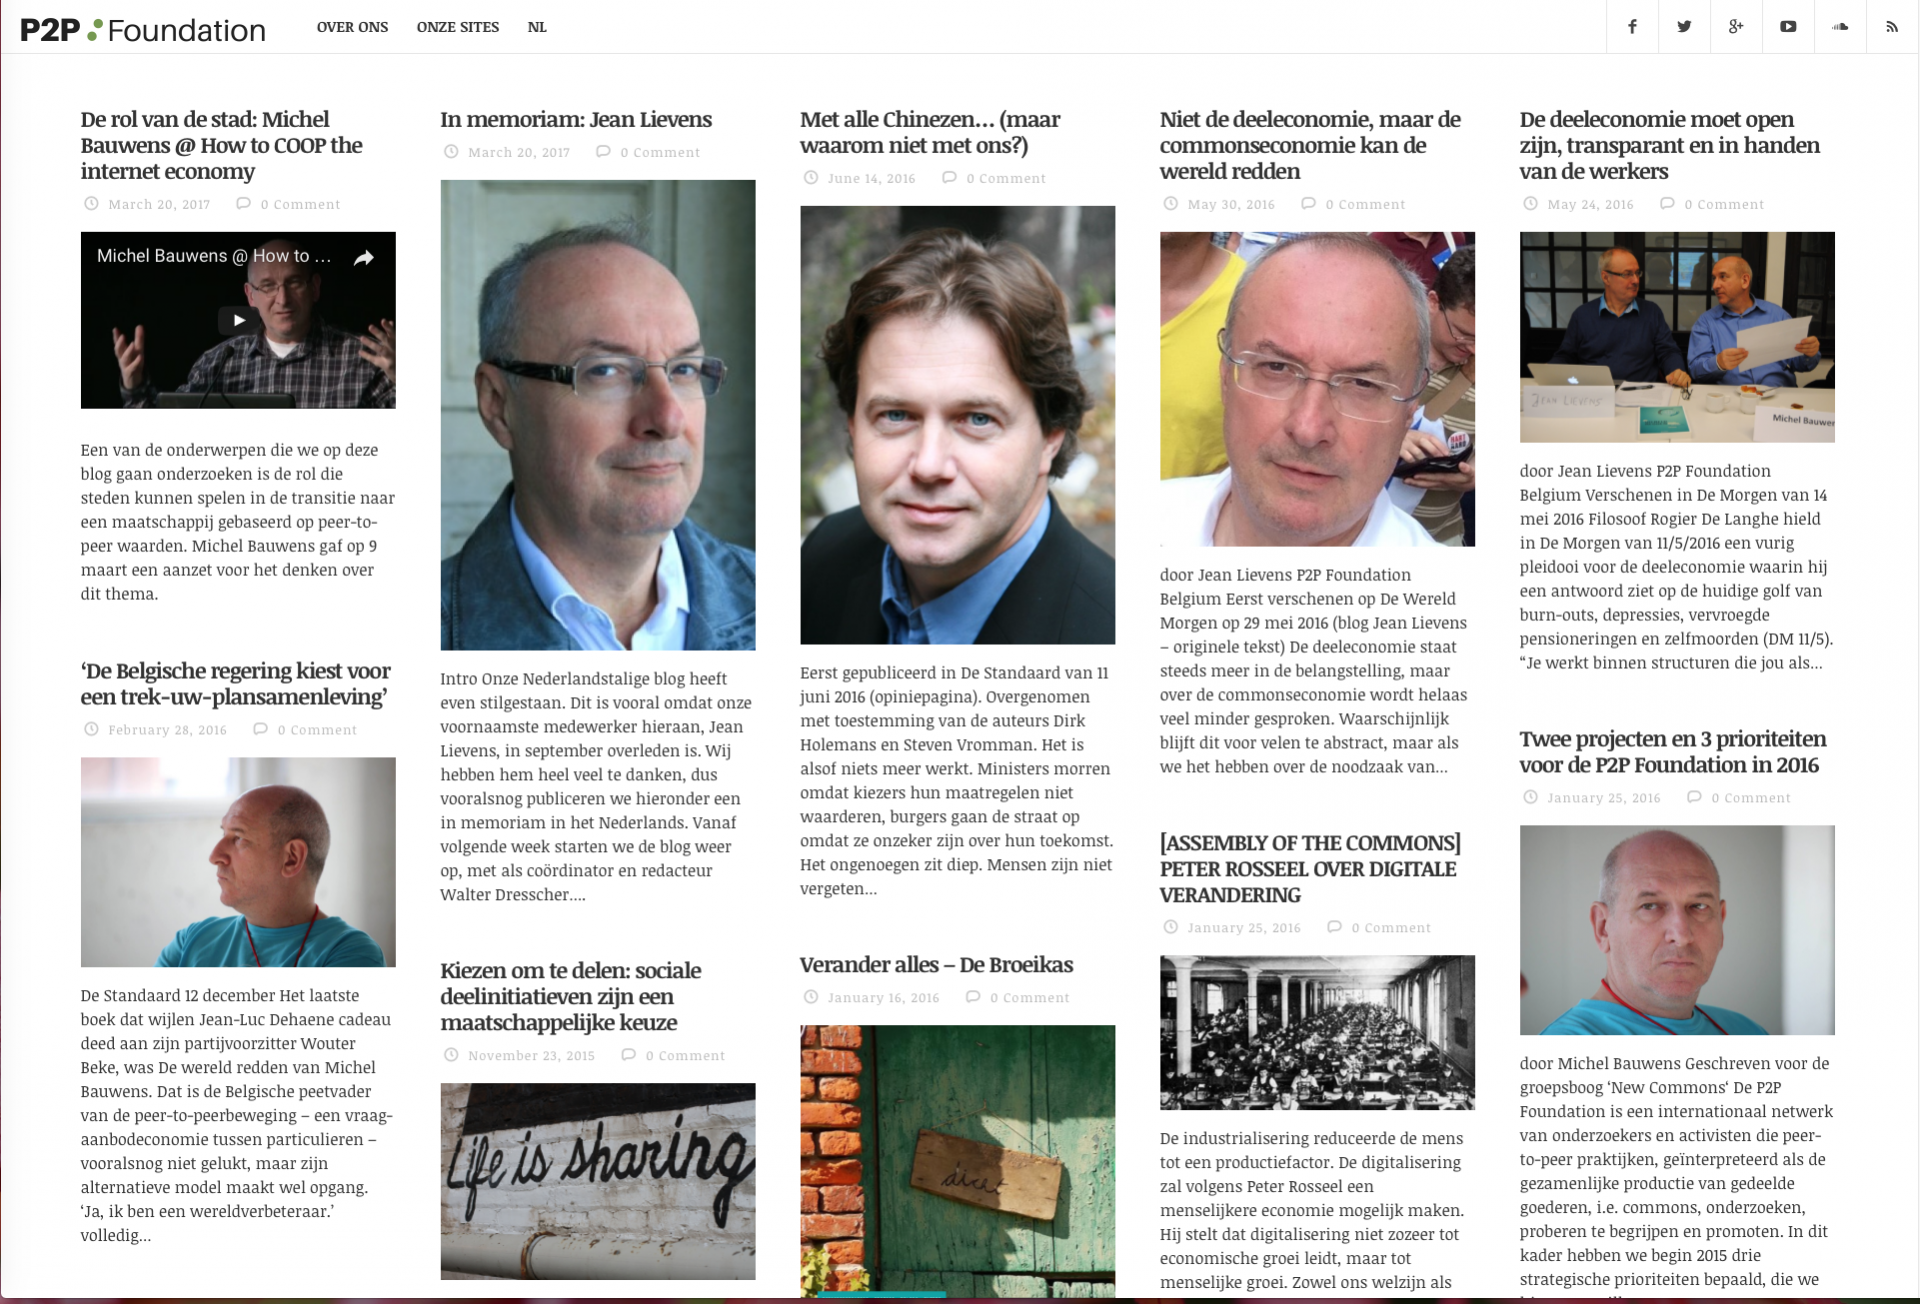 Dutch P2P Foundation Blog relaunched today